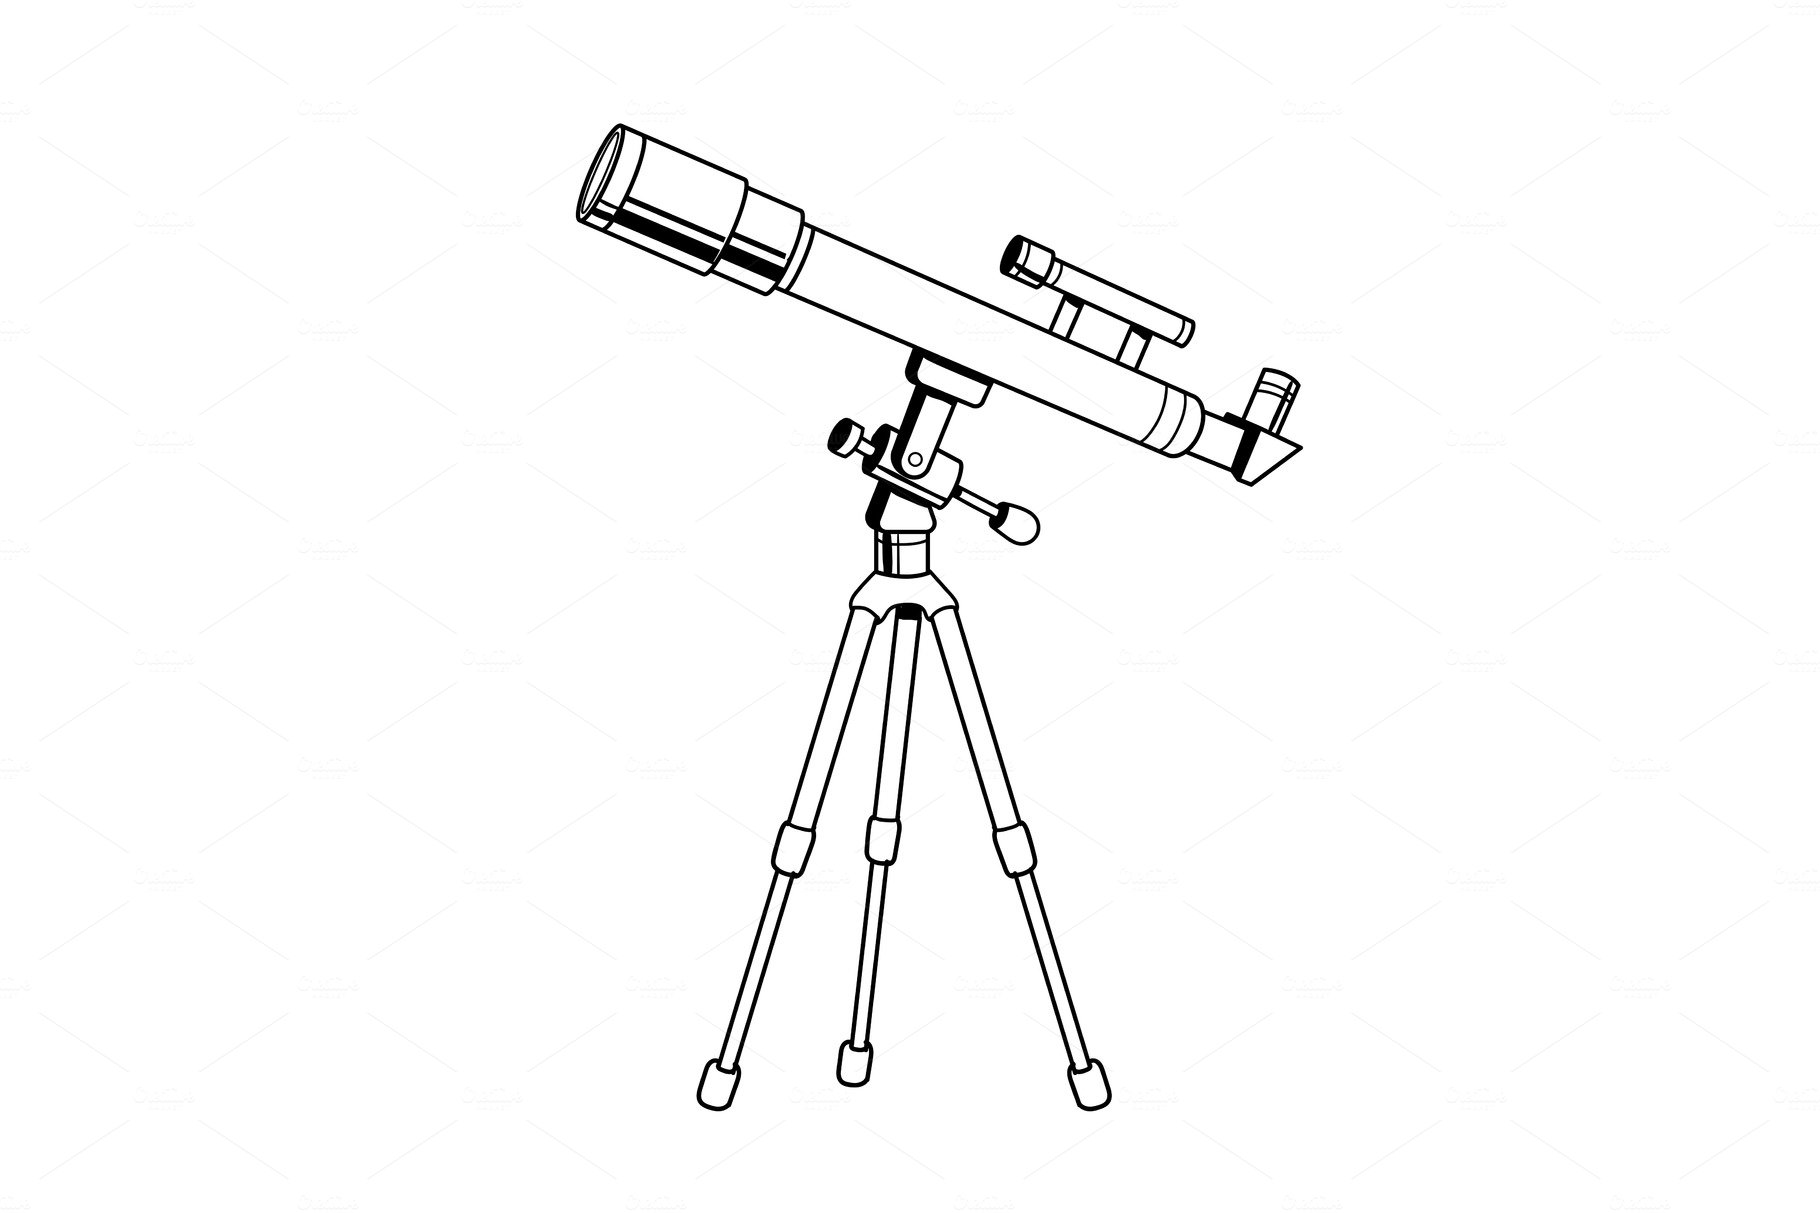 Download Telescope object coloring book vector ~ Graphic Objects ~ Creative Market